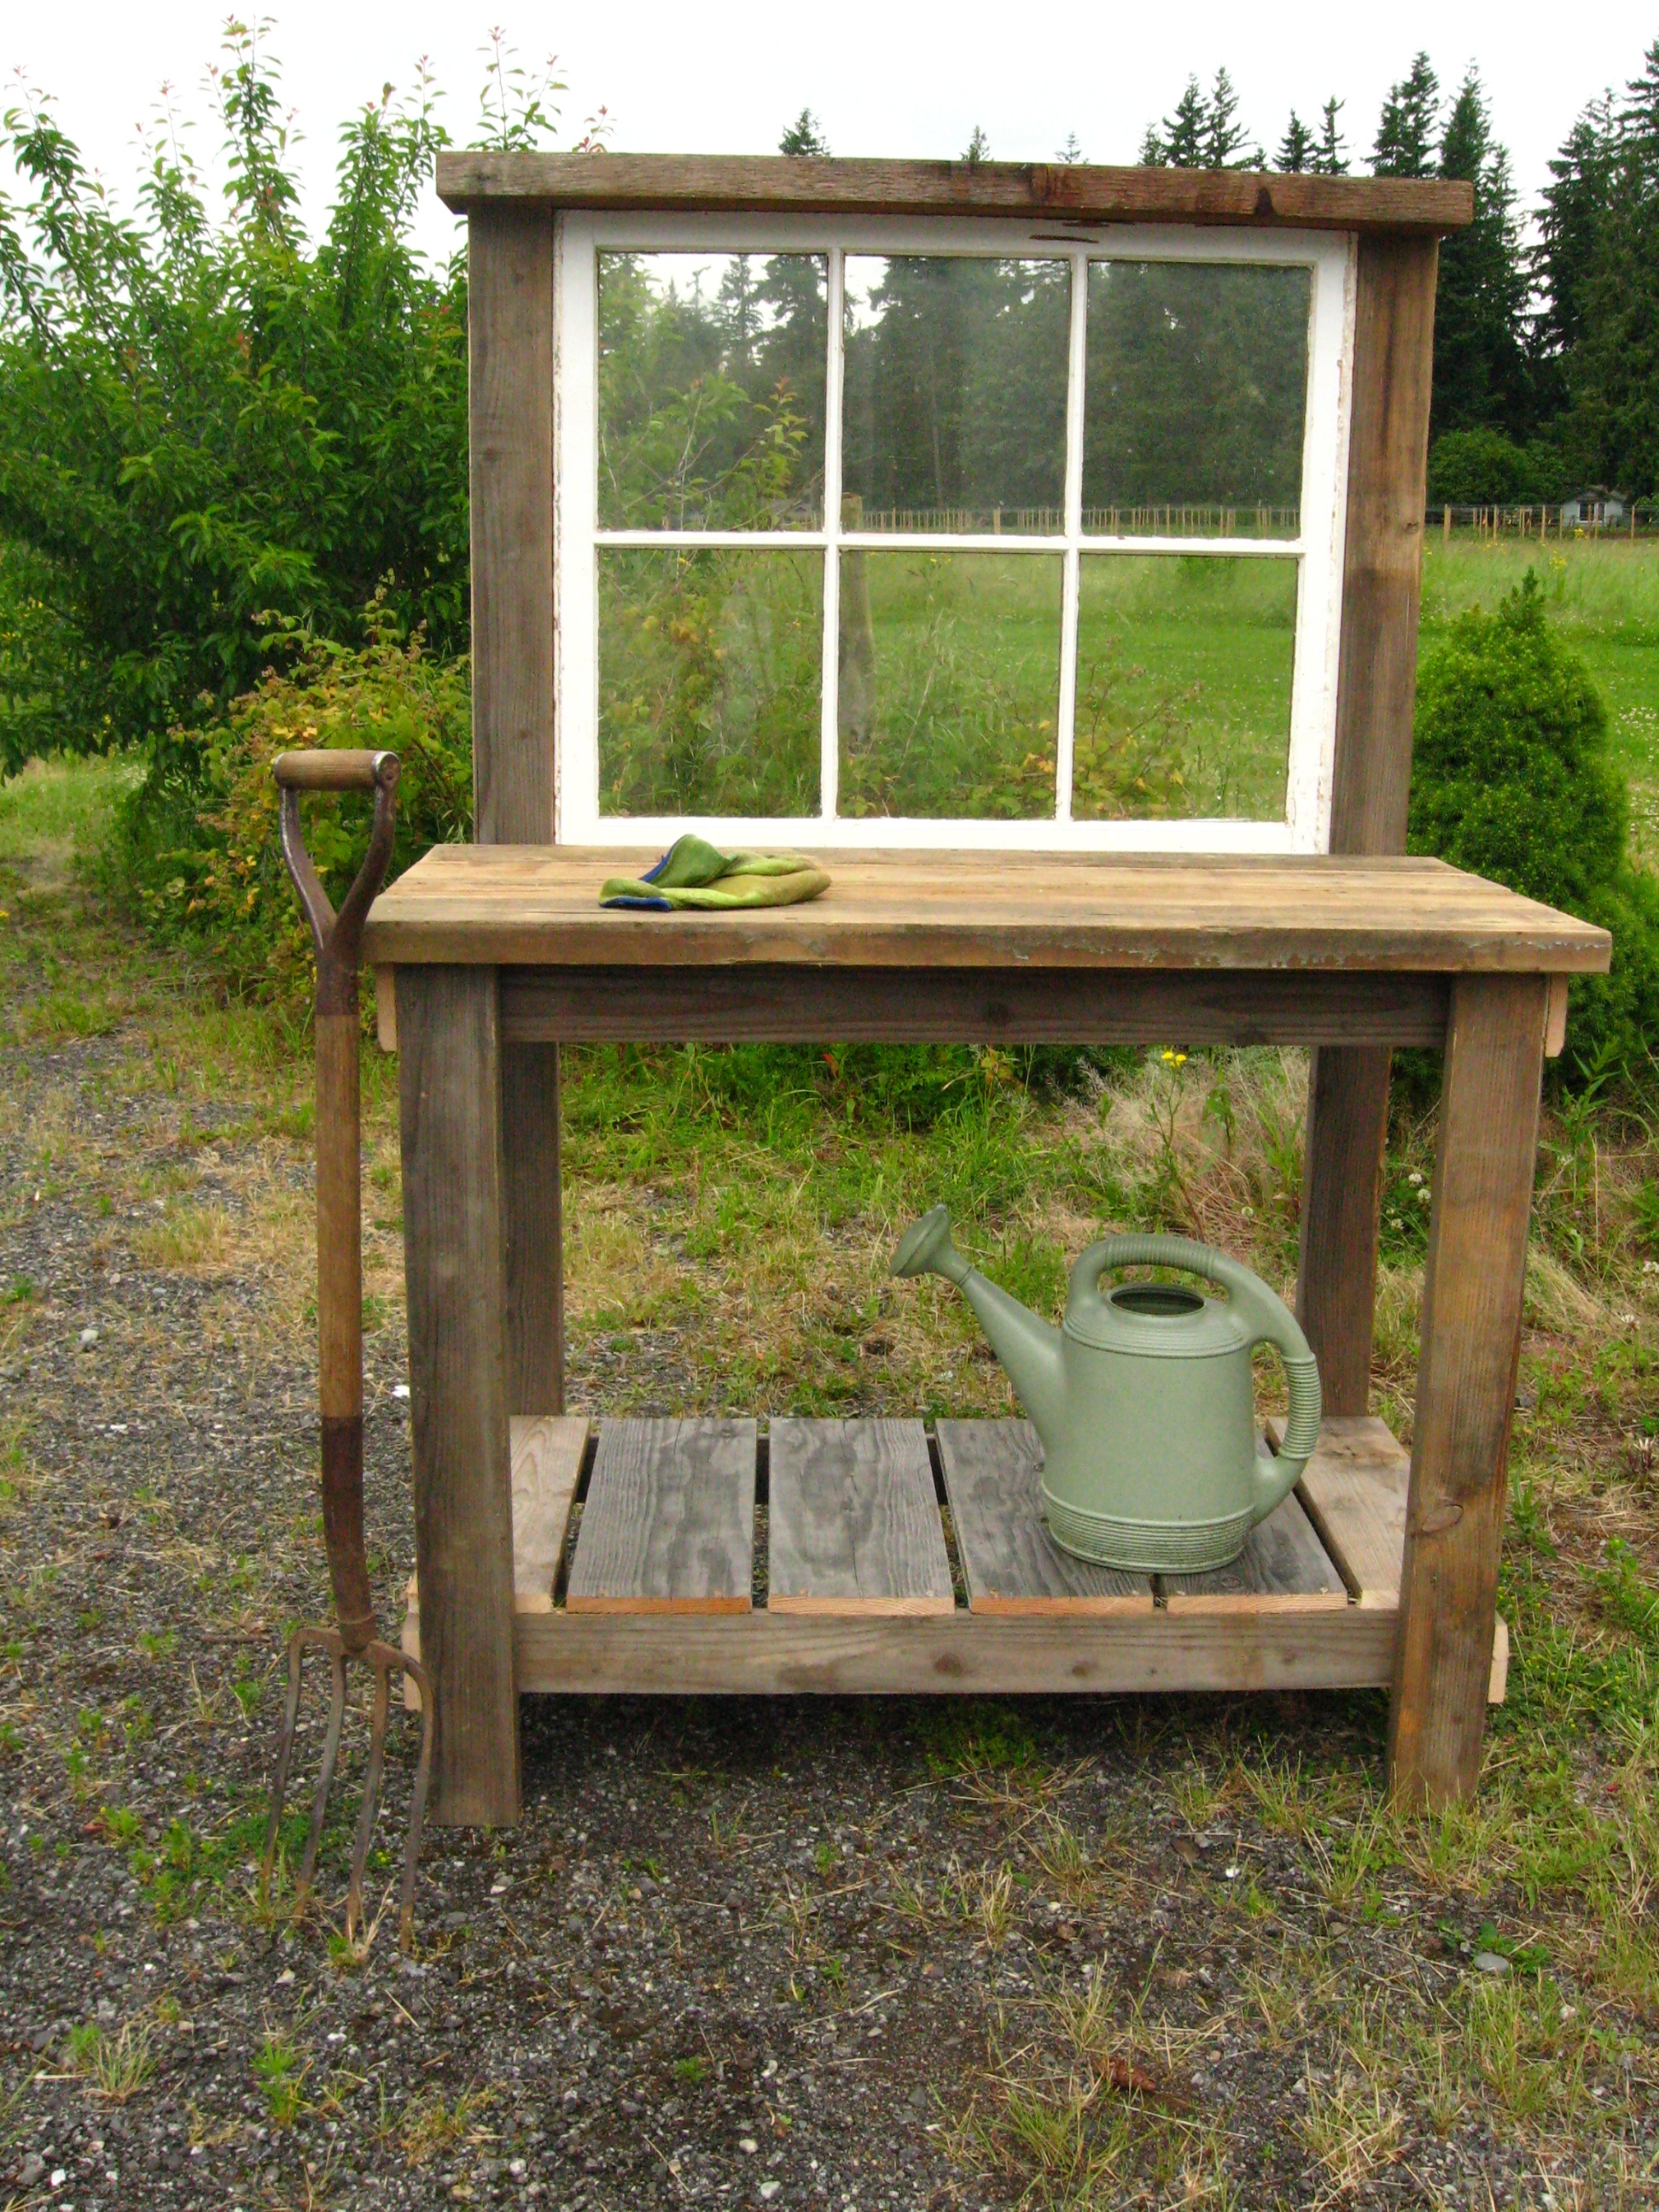 Rustic Potting Bench With An Old Window 130 Dream Garden Woodworks